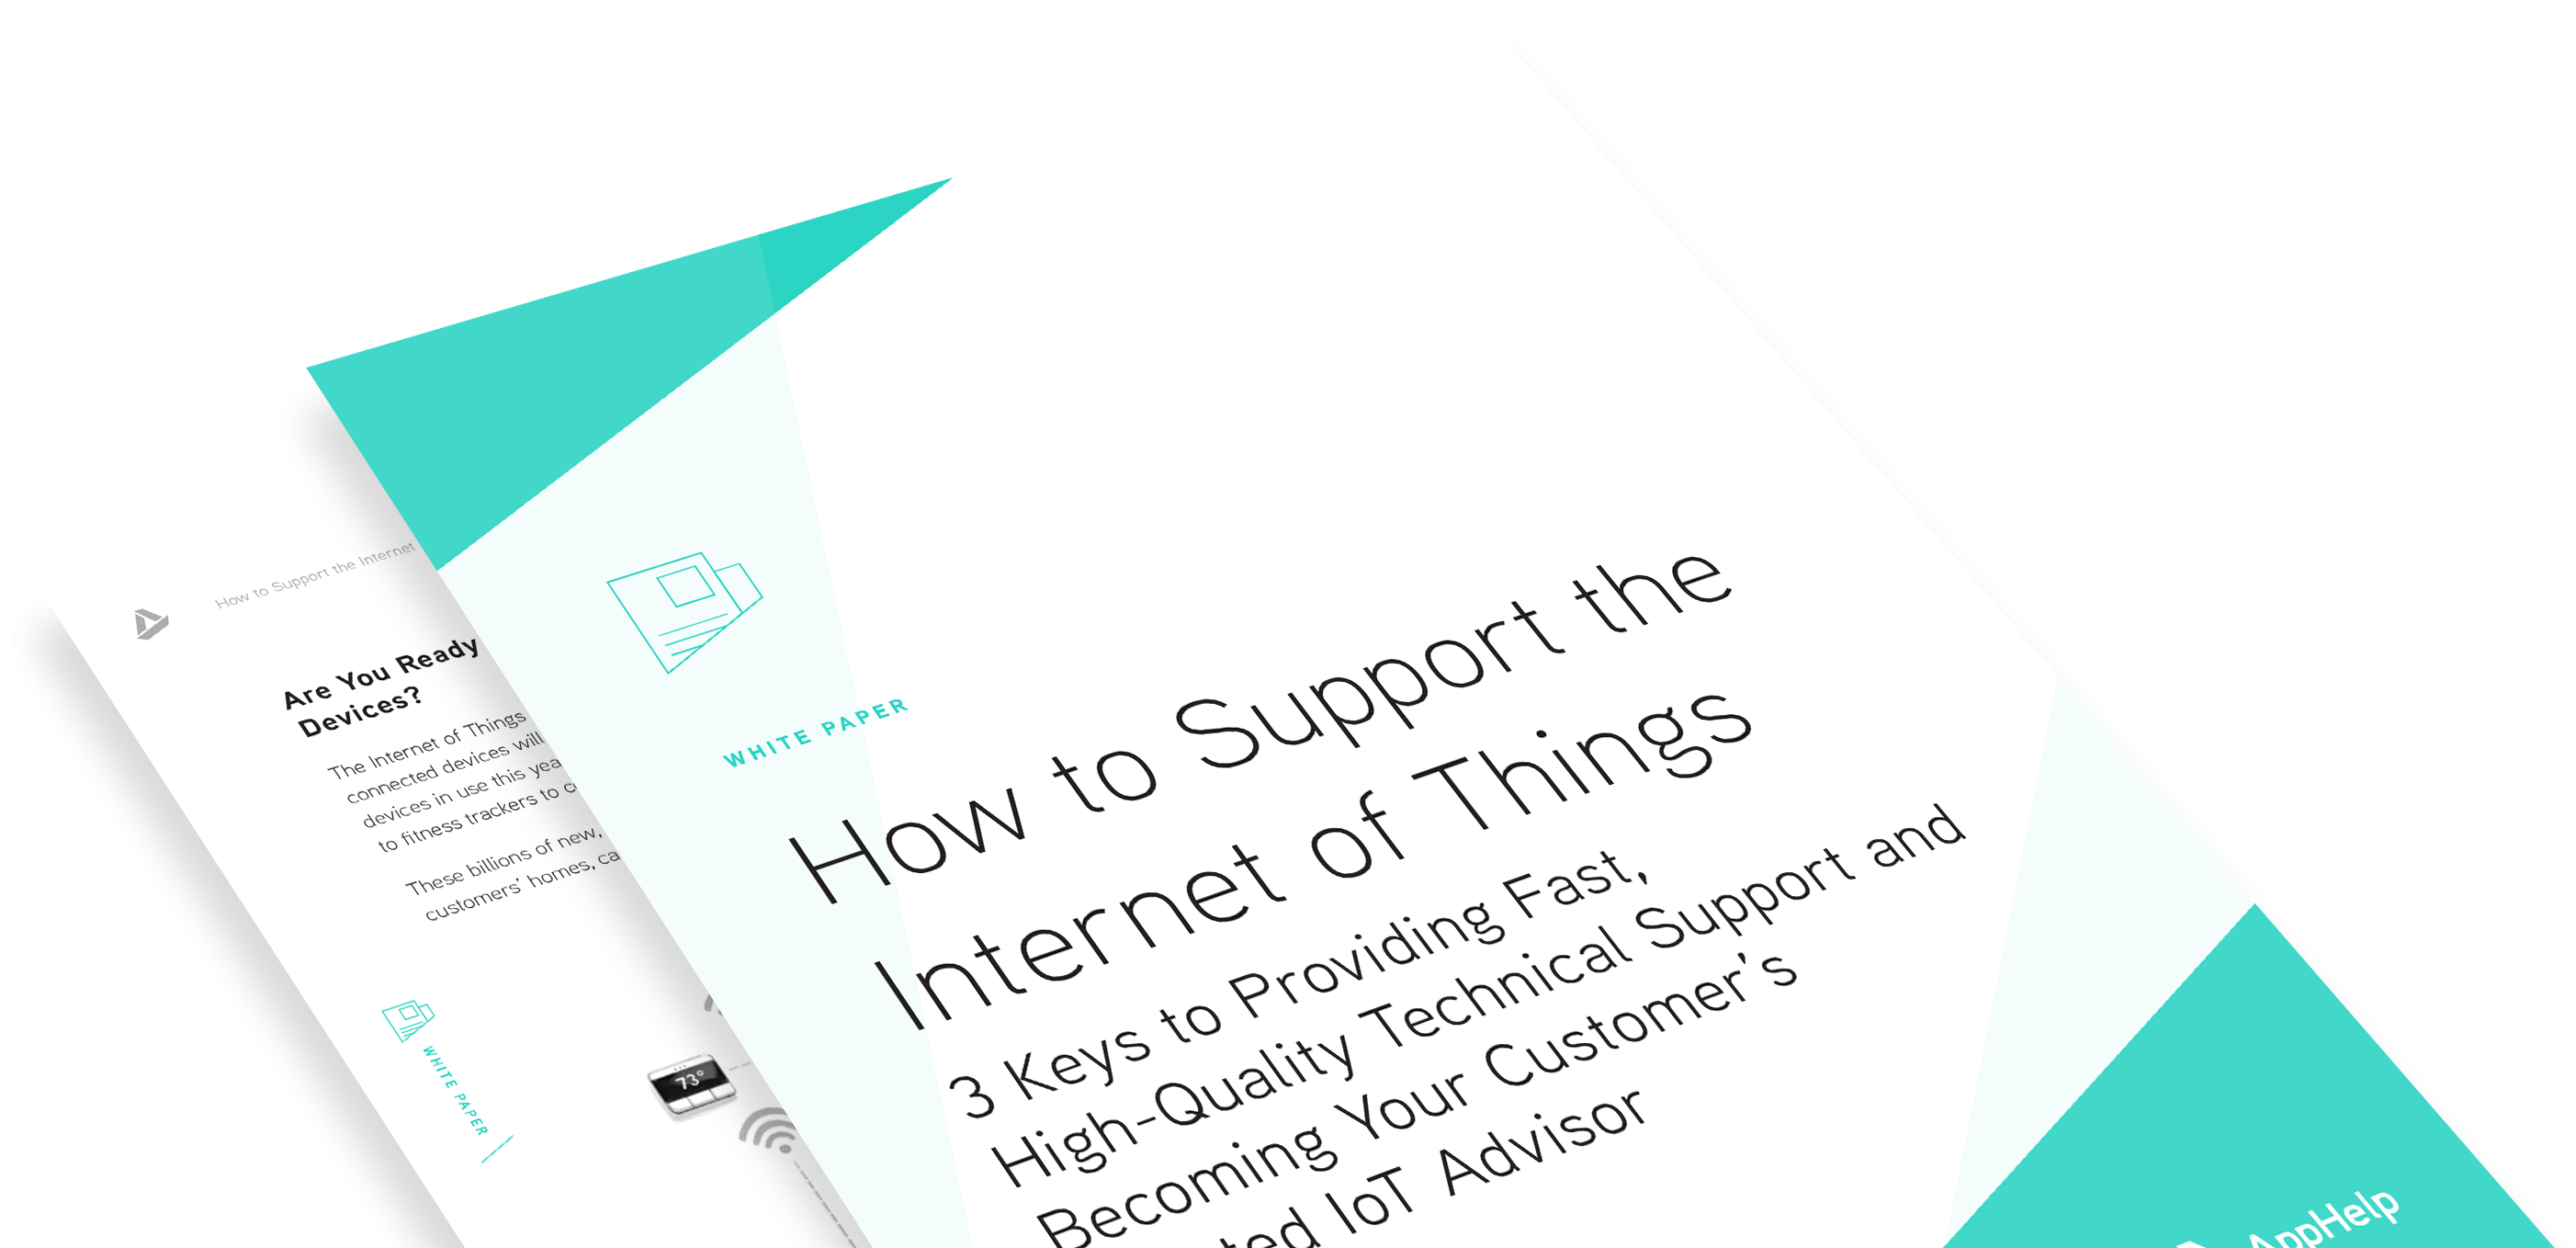 How to Support the Internet of Things